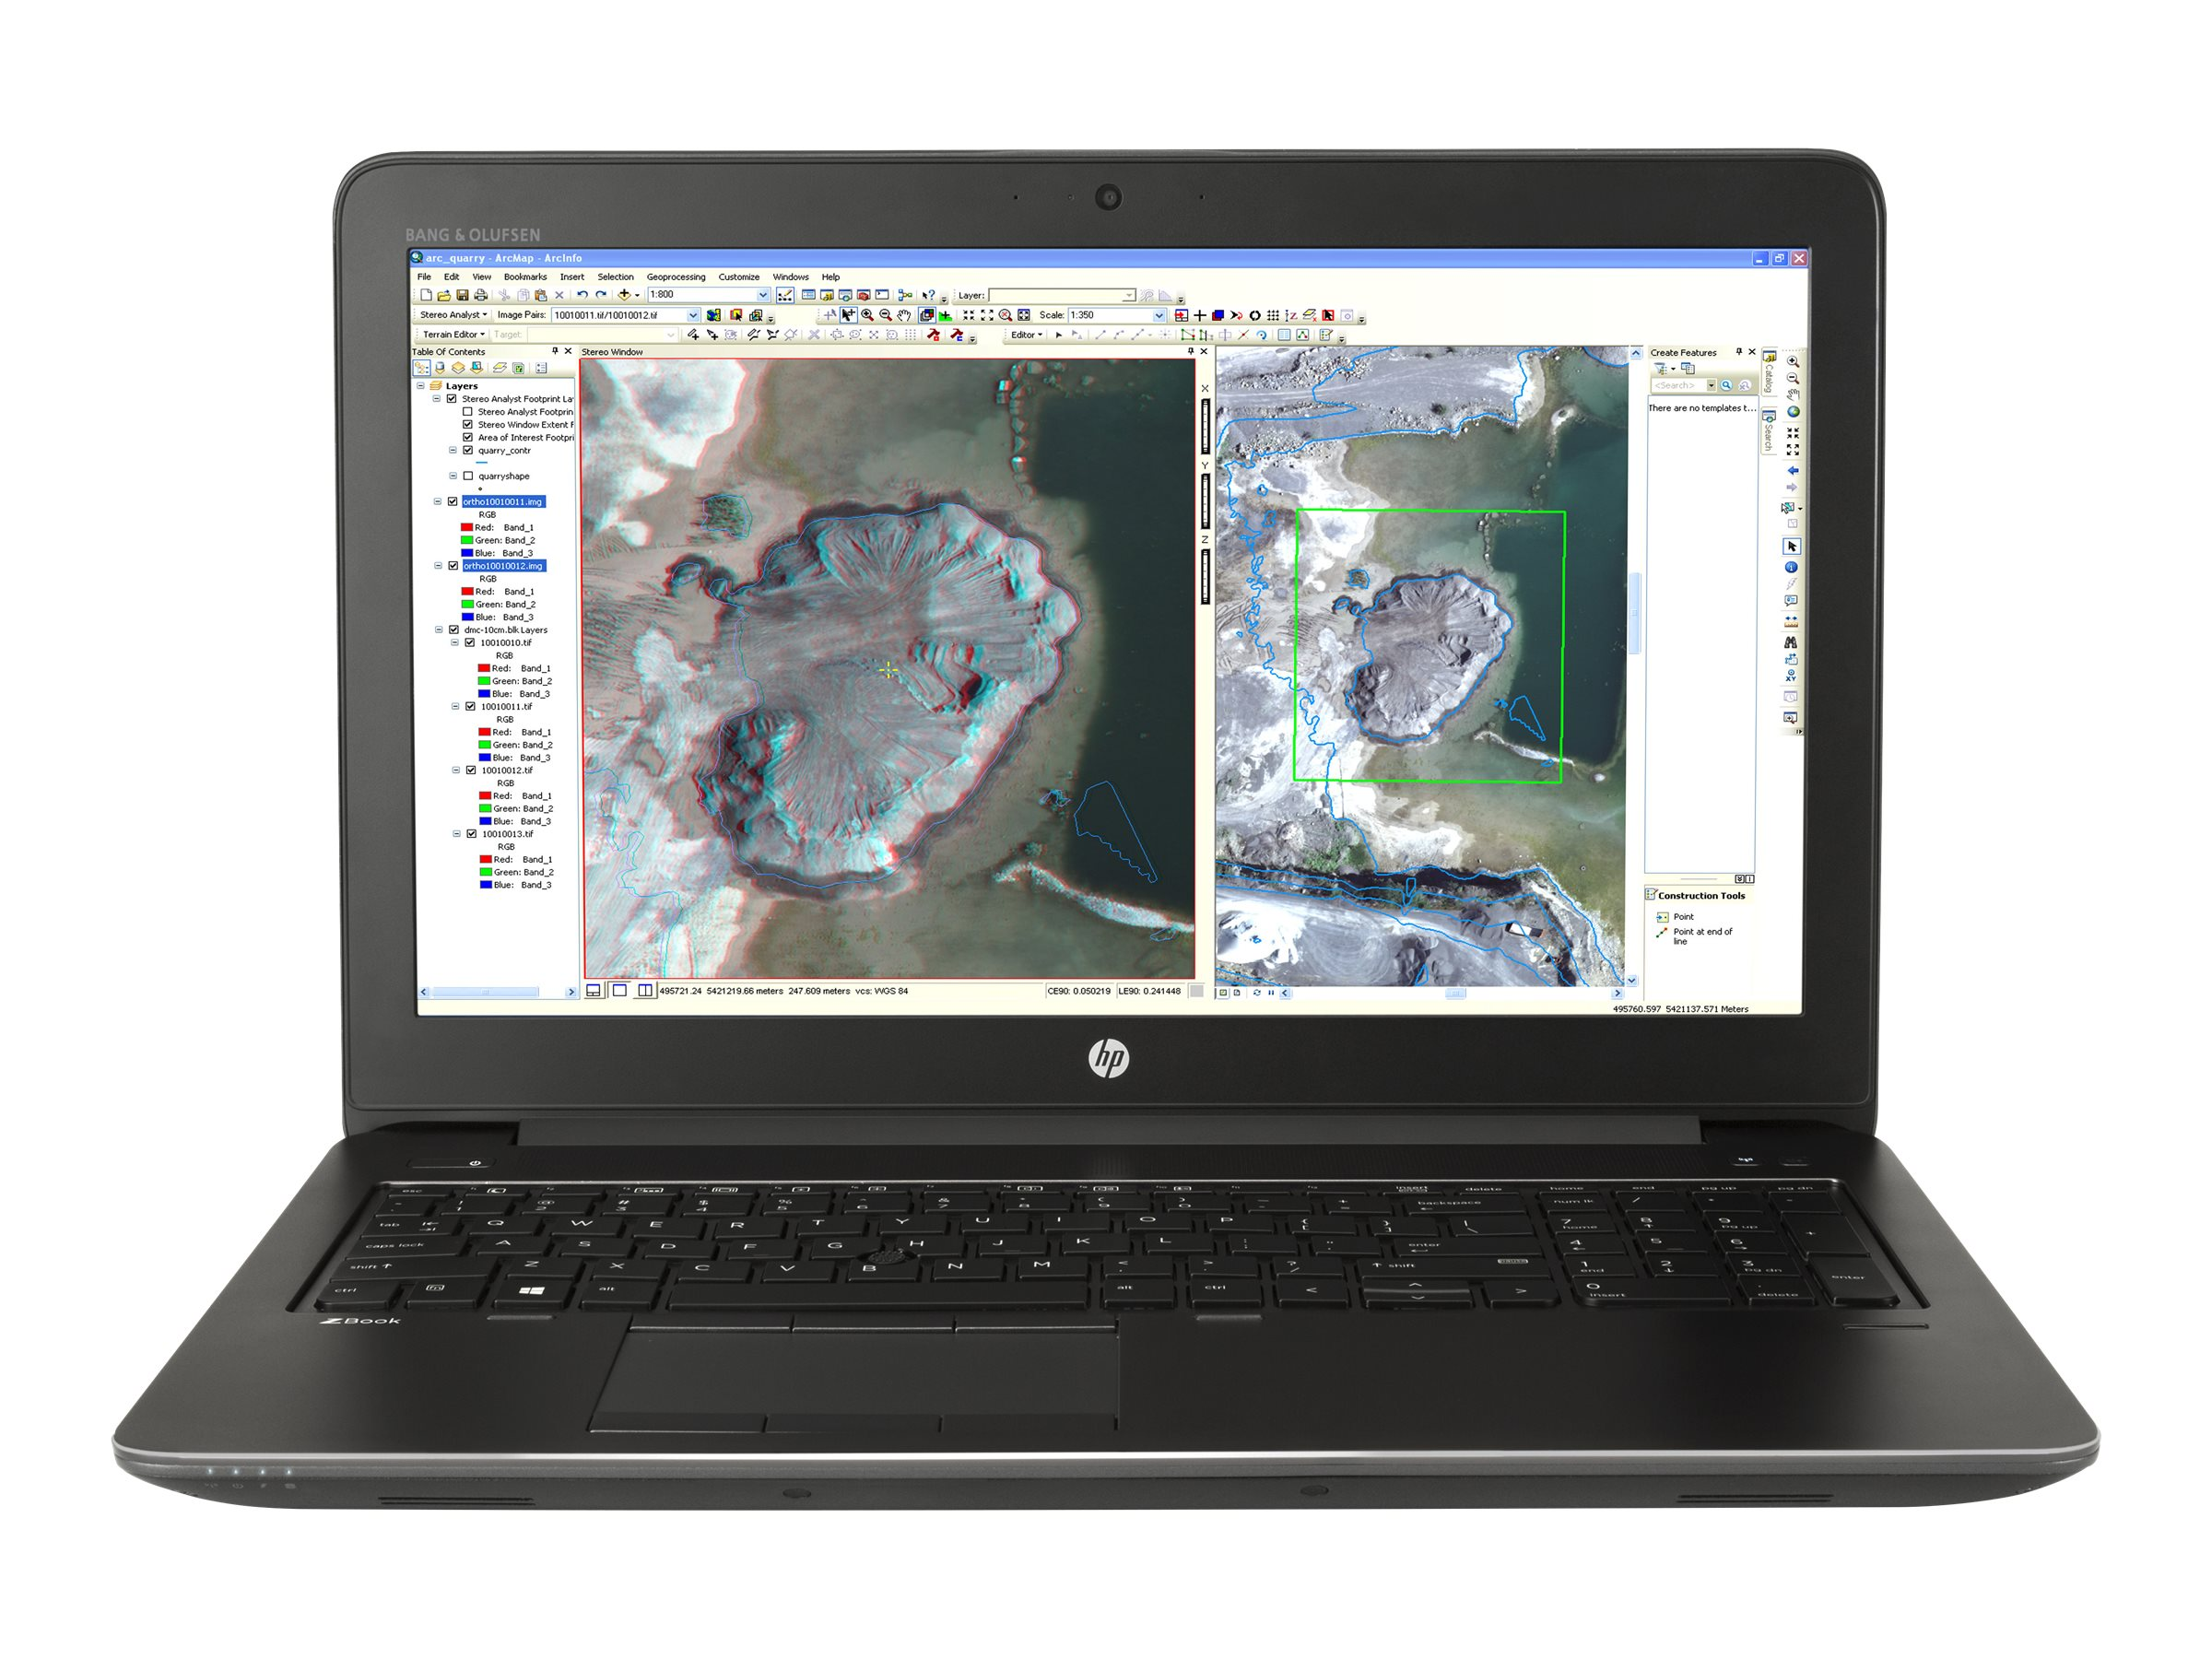 HP ZBook 15 G3 Core i7-6700HQ 2.6GHz 16GB 512GB ac BT FR WC 9C M2000M 15.6 FHD W7P64-W10P